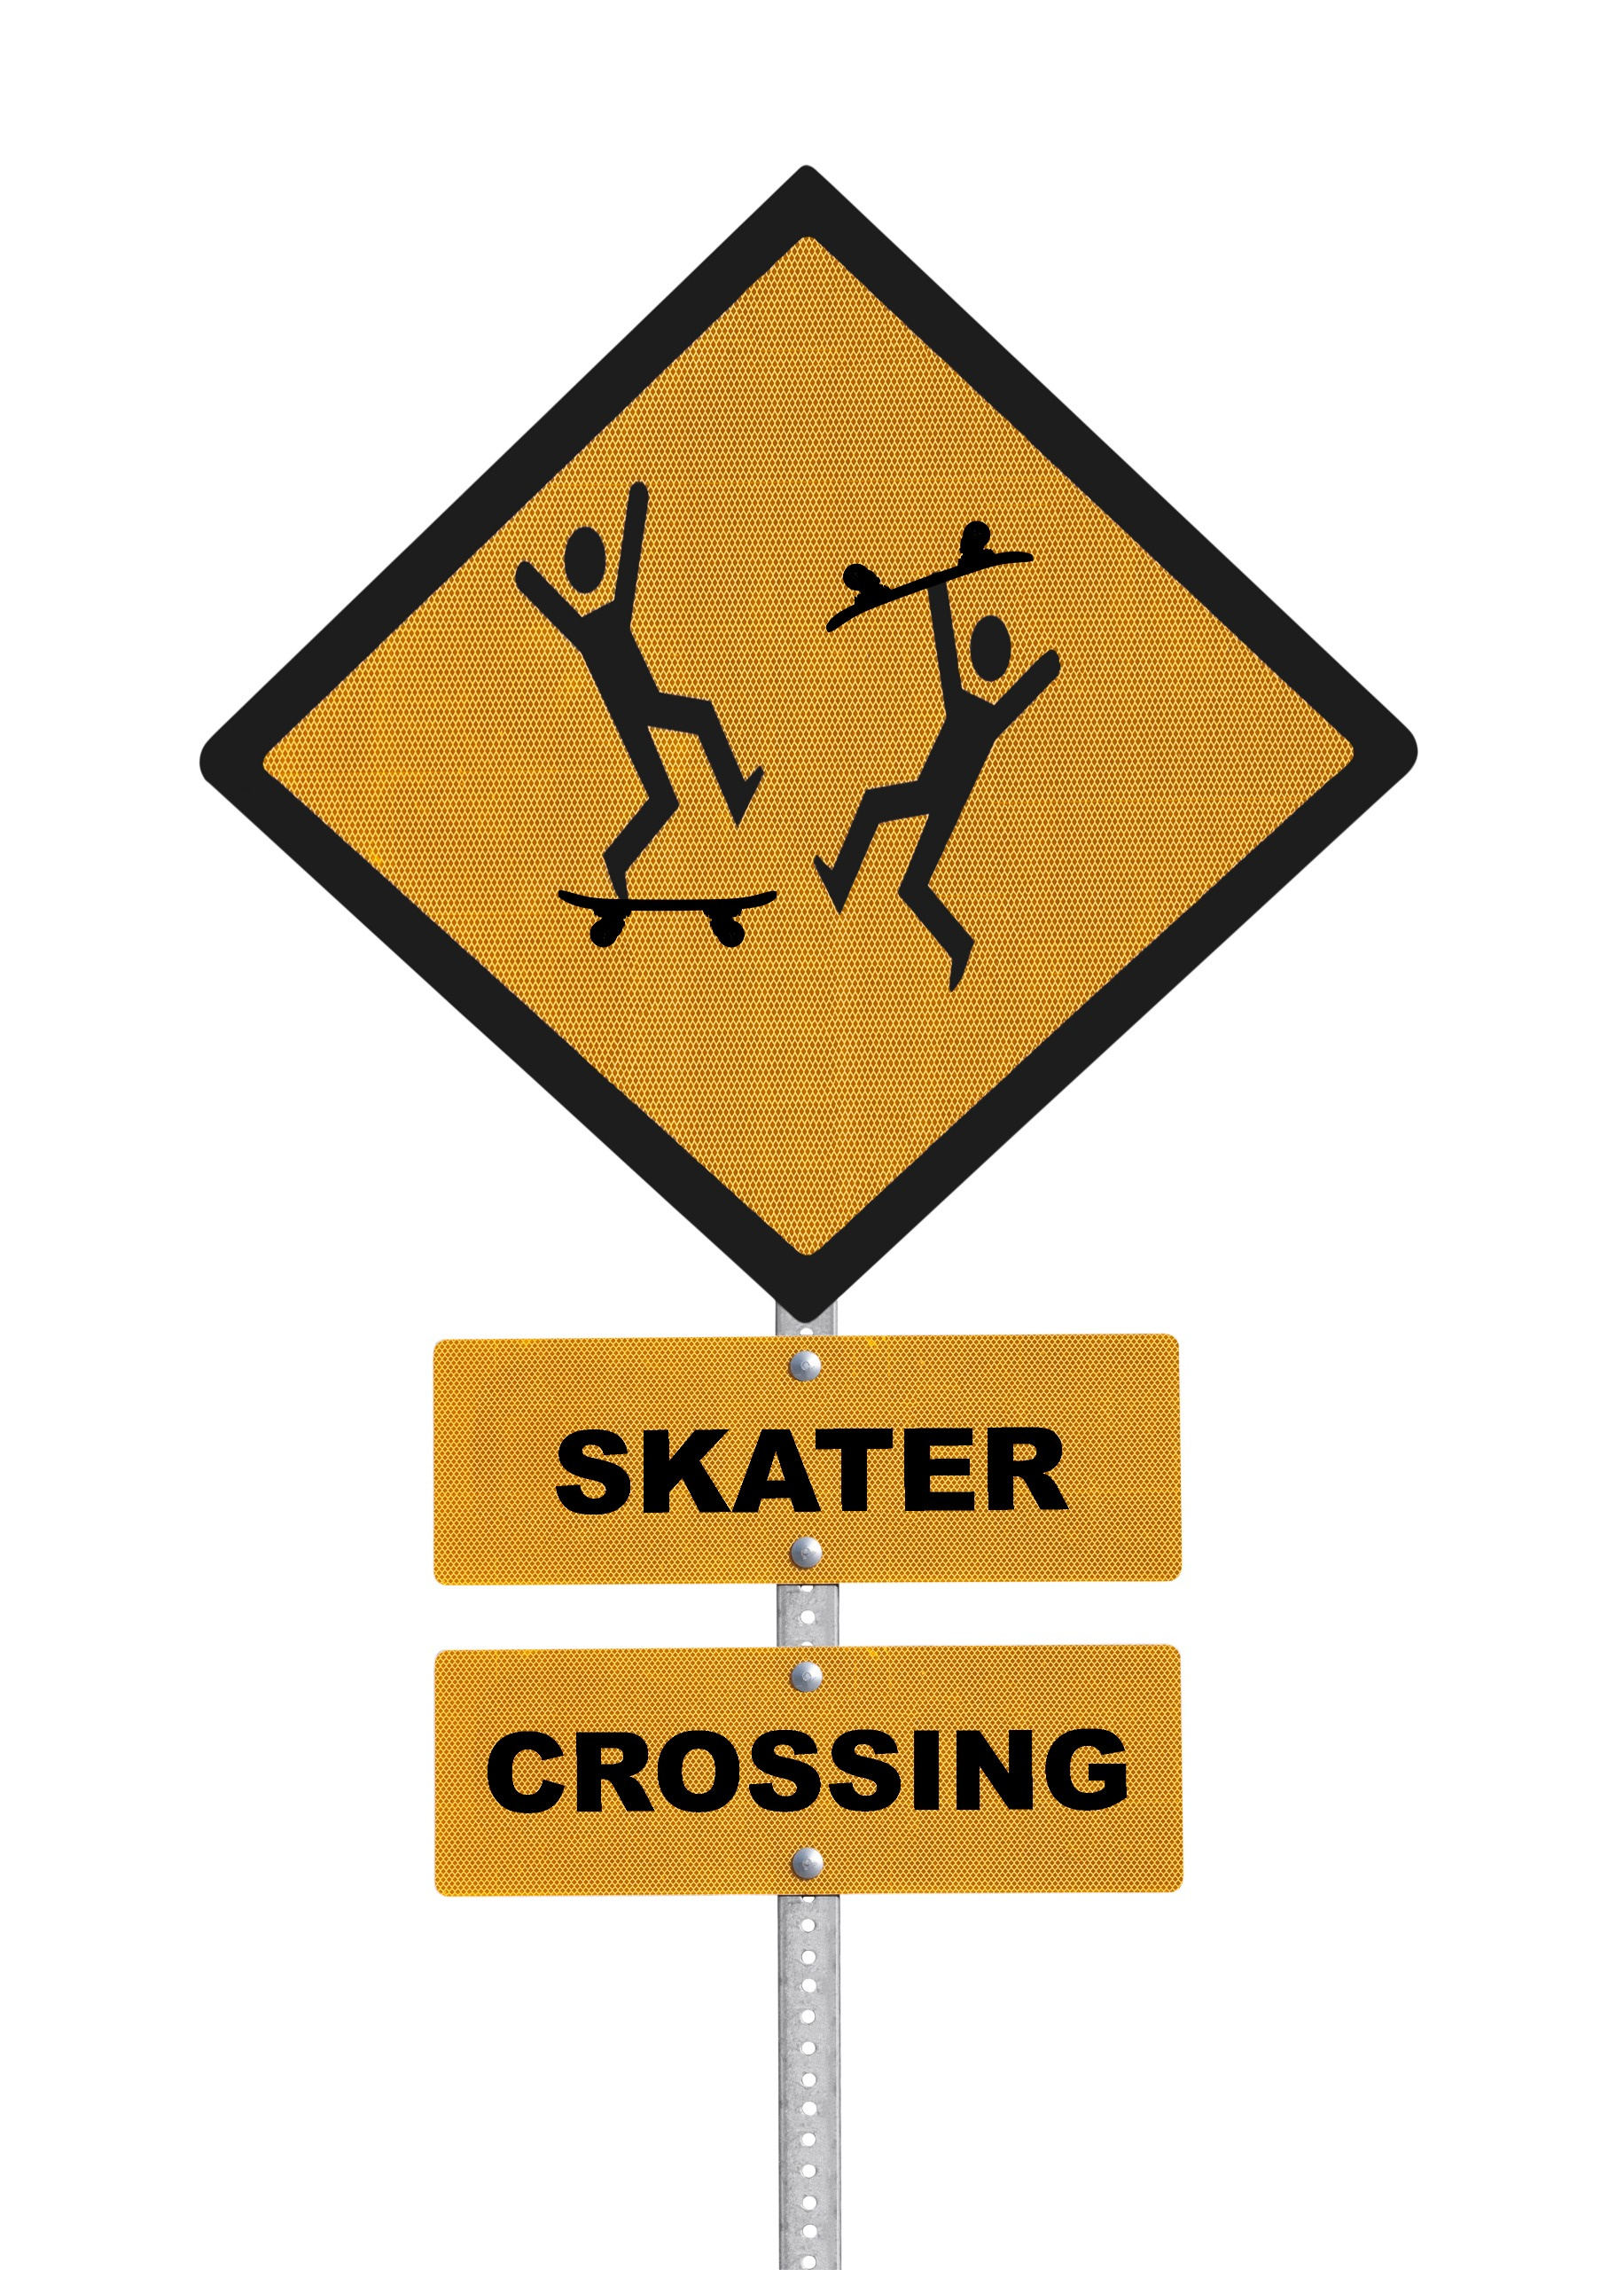 Skater crossing sign